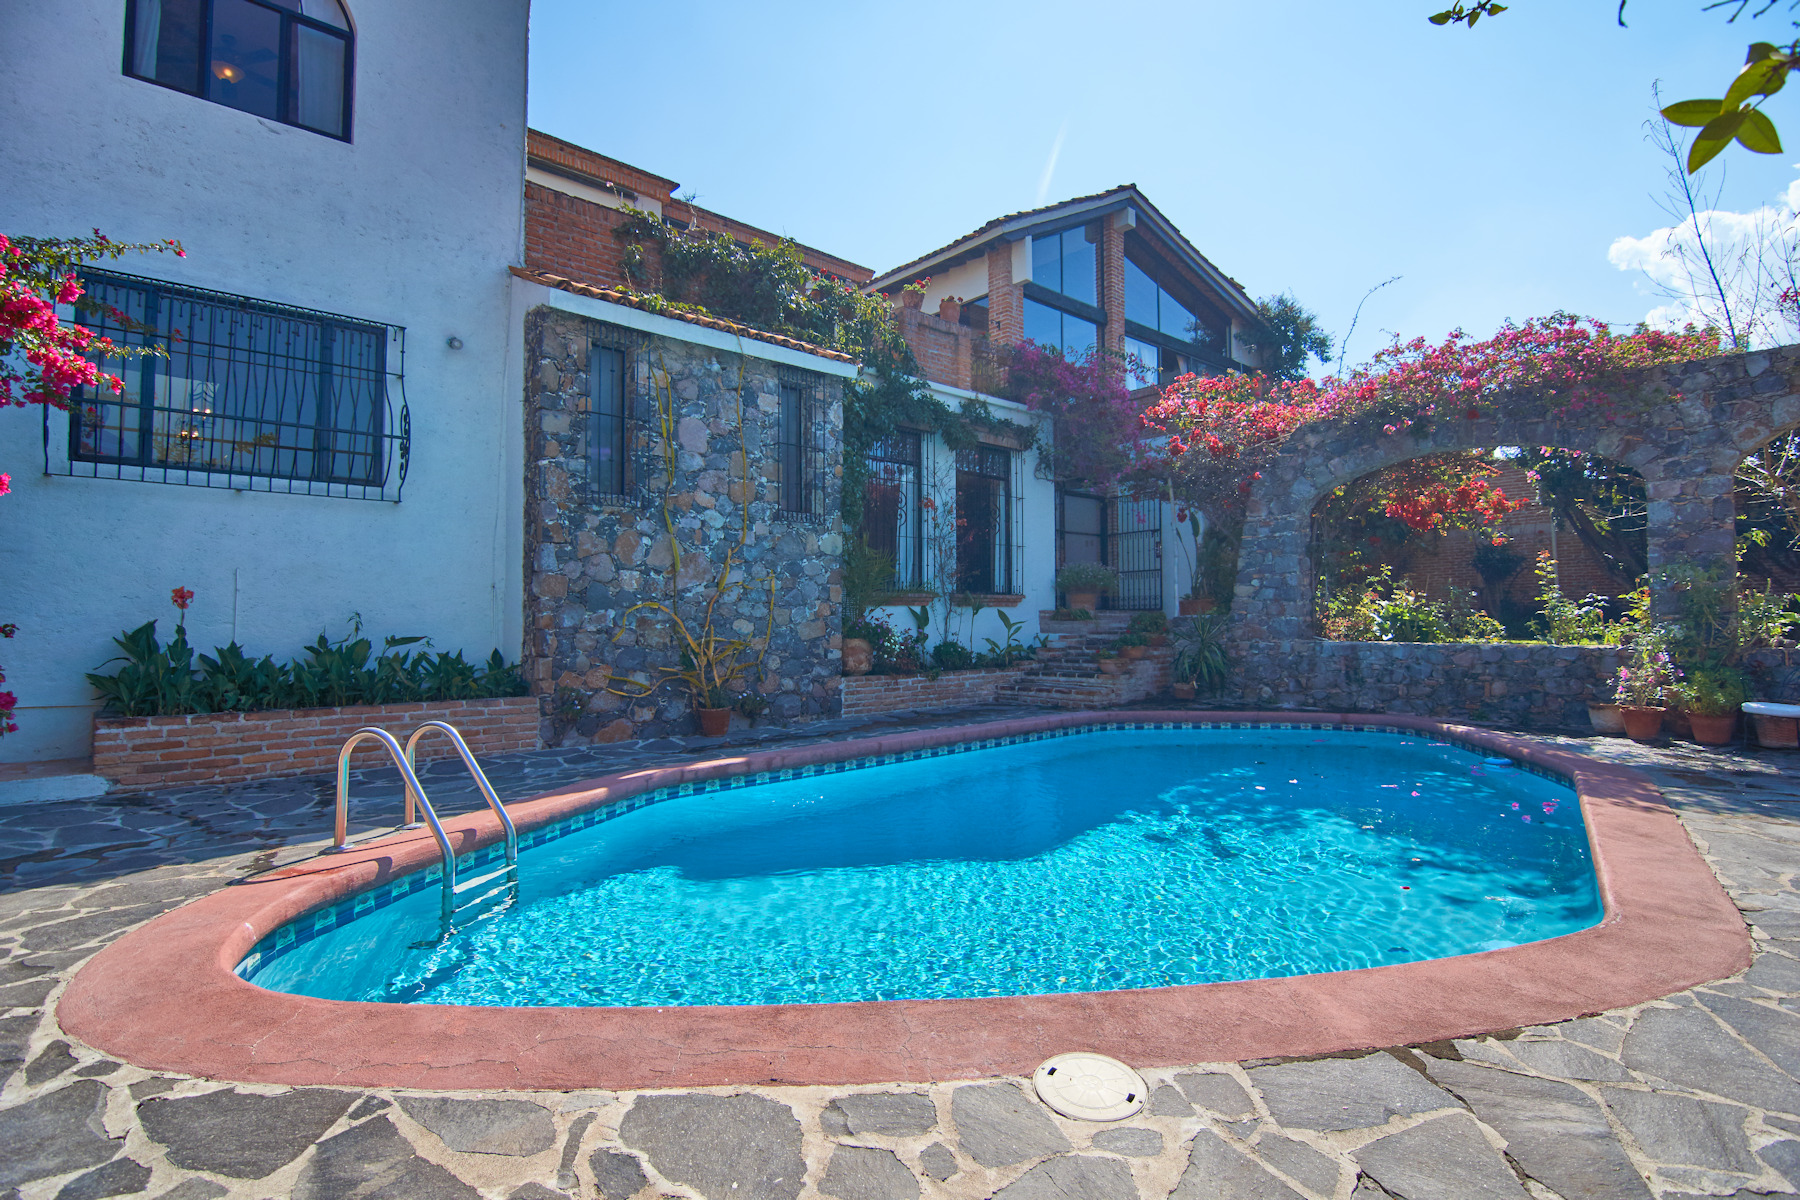 Single Family Home for Sale at CASA BELL Porton San Miguel De Allende, Guanajuato, 37710 Mexico